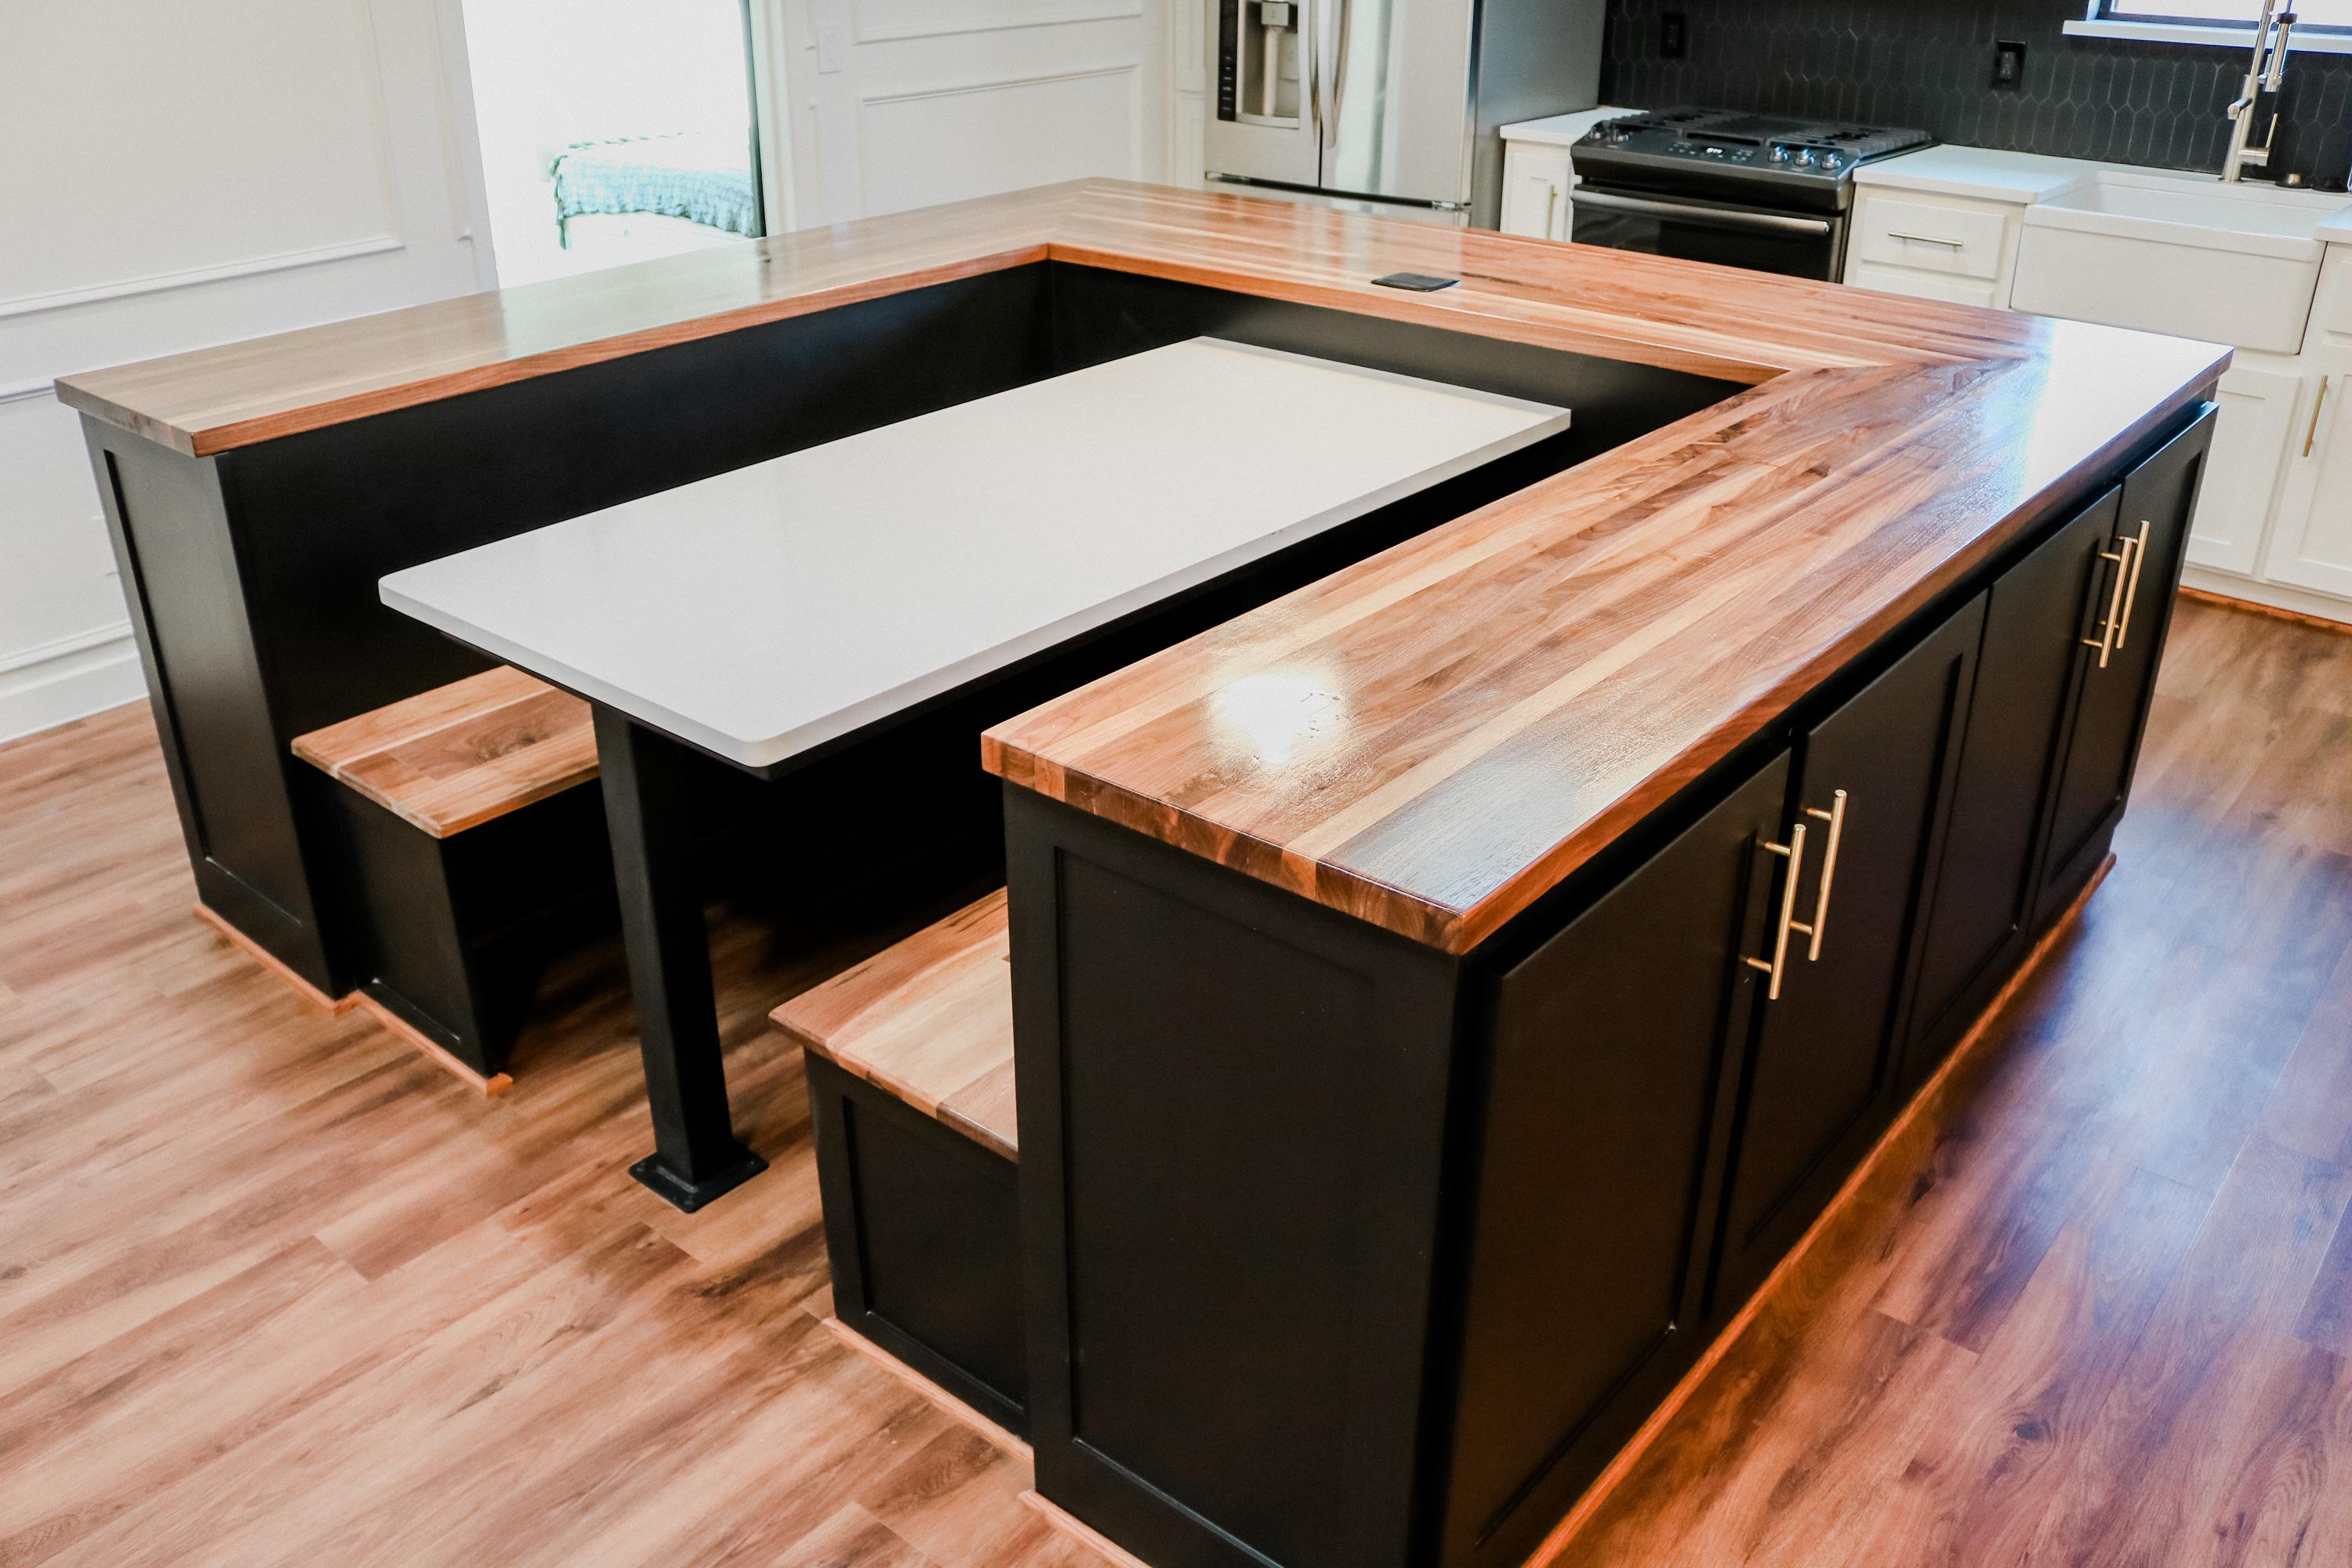 Here Are Some Butcher Block Countertops And Benches Not Pictured Are Floating Shelves I Just Did For A Full Home Remodel All Black Walnut Woodworking